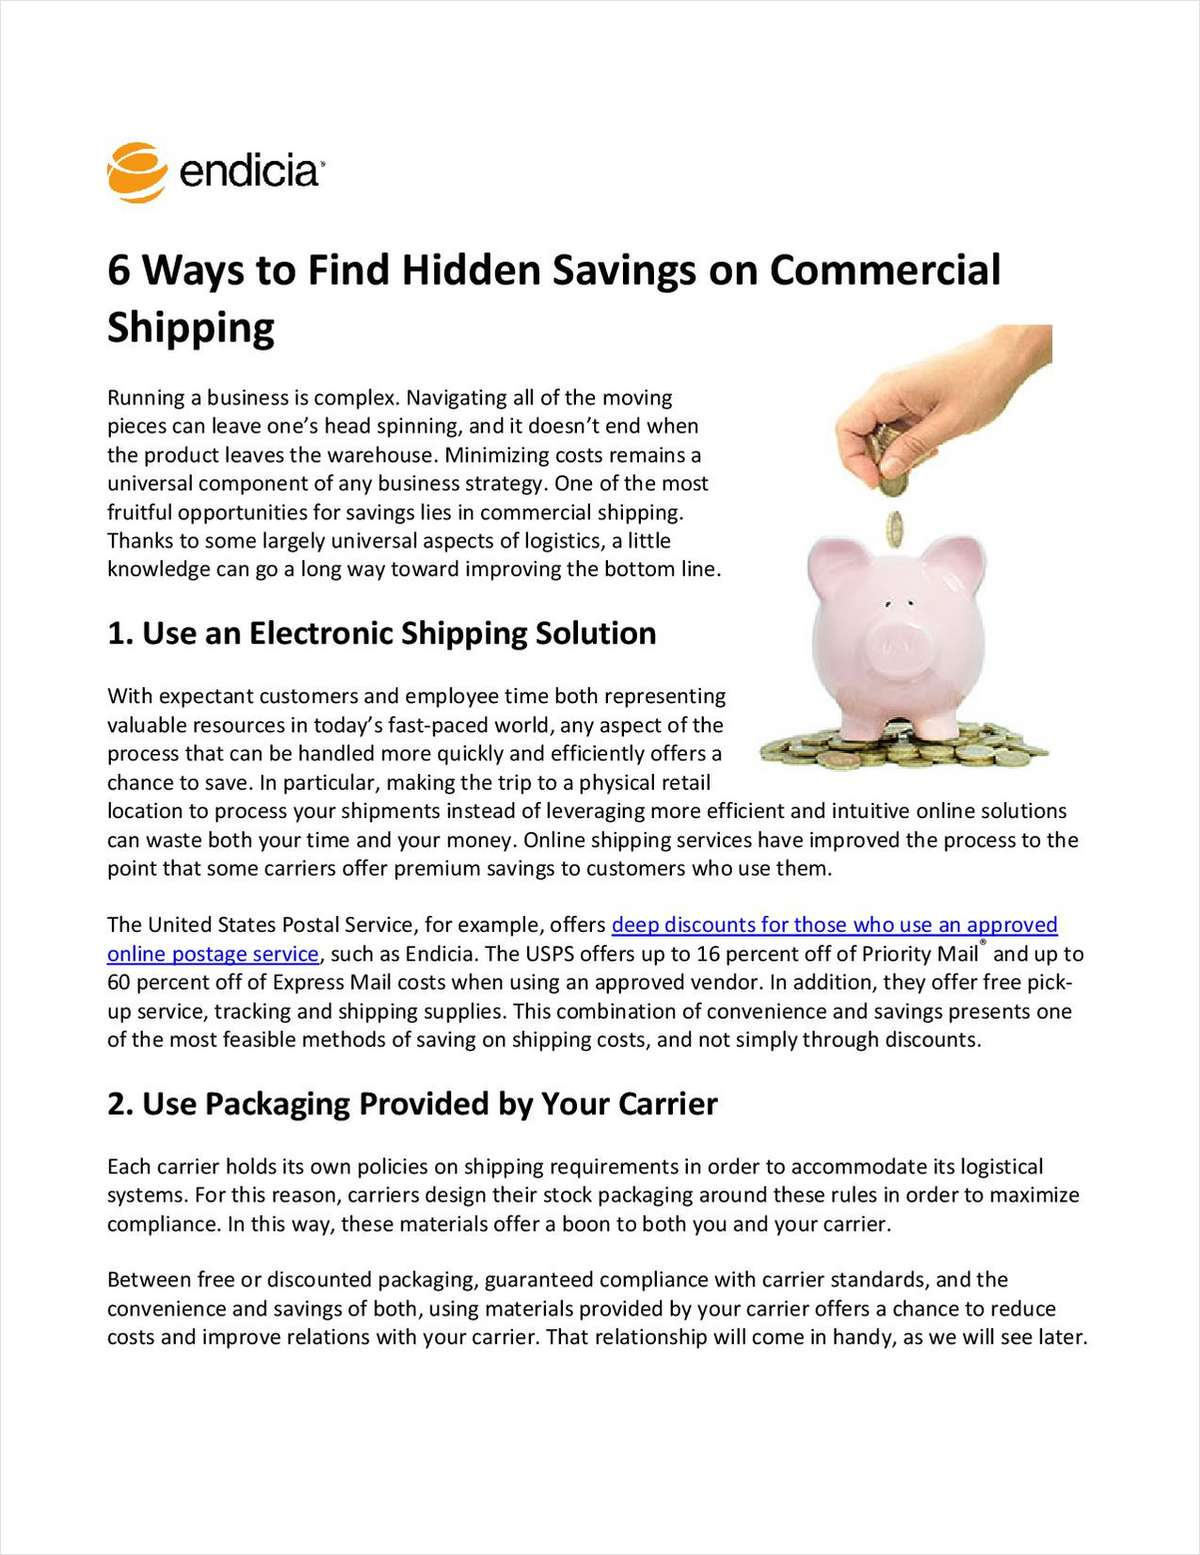 Six Ways to Find Hidden Savings on Commercial Shipping